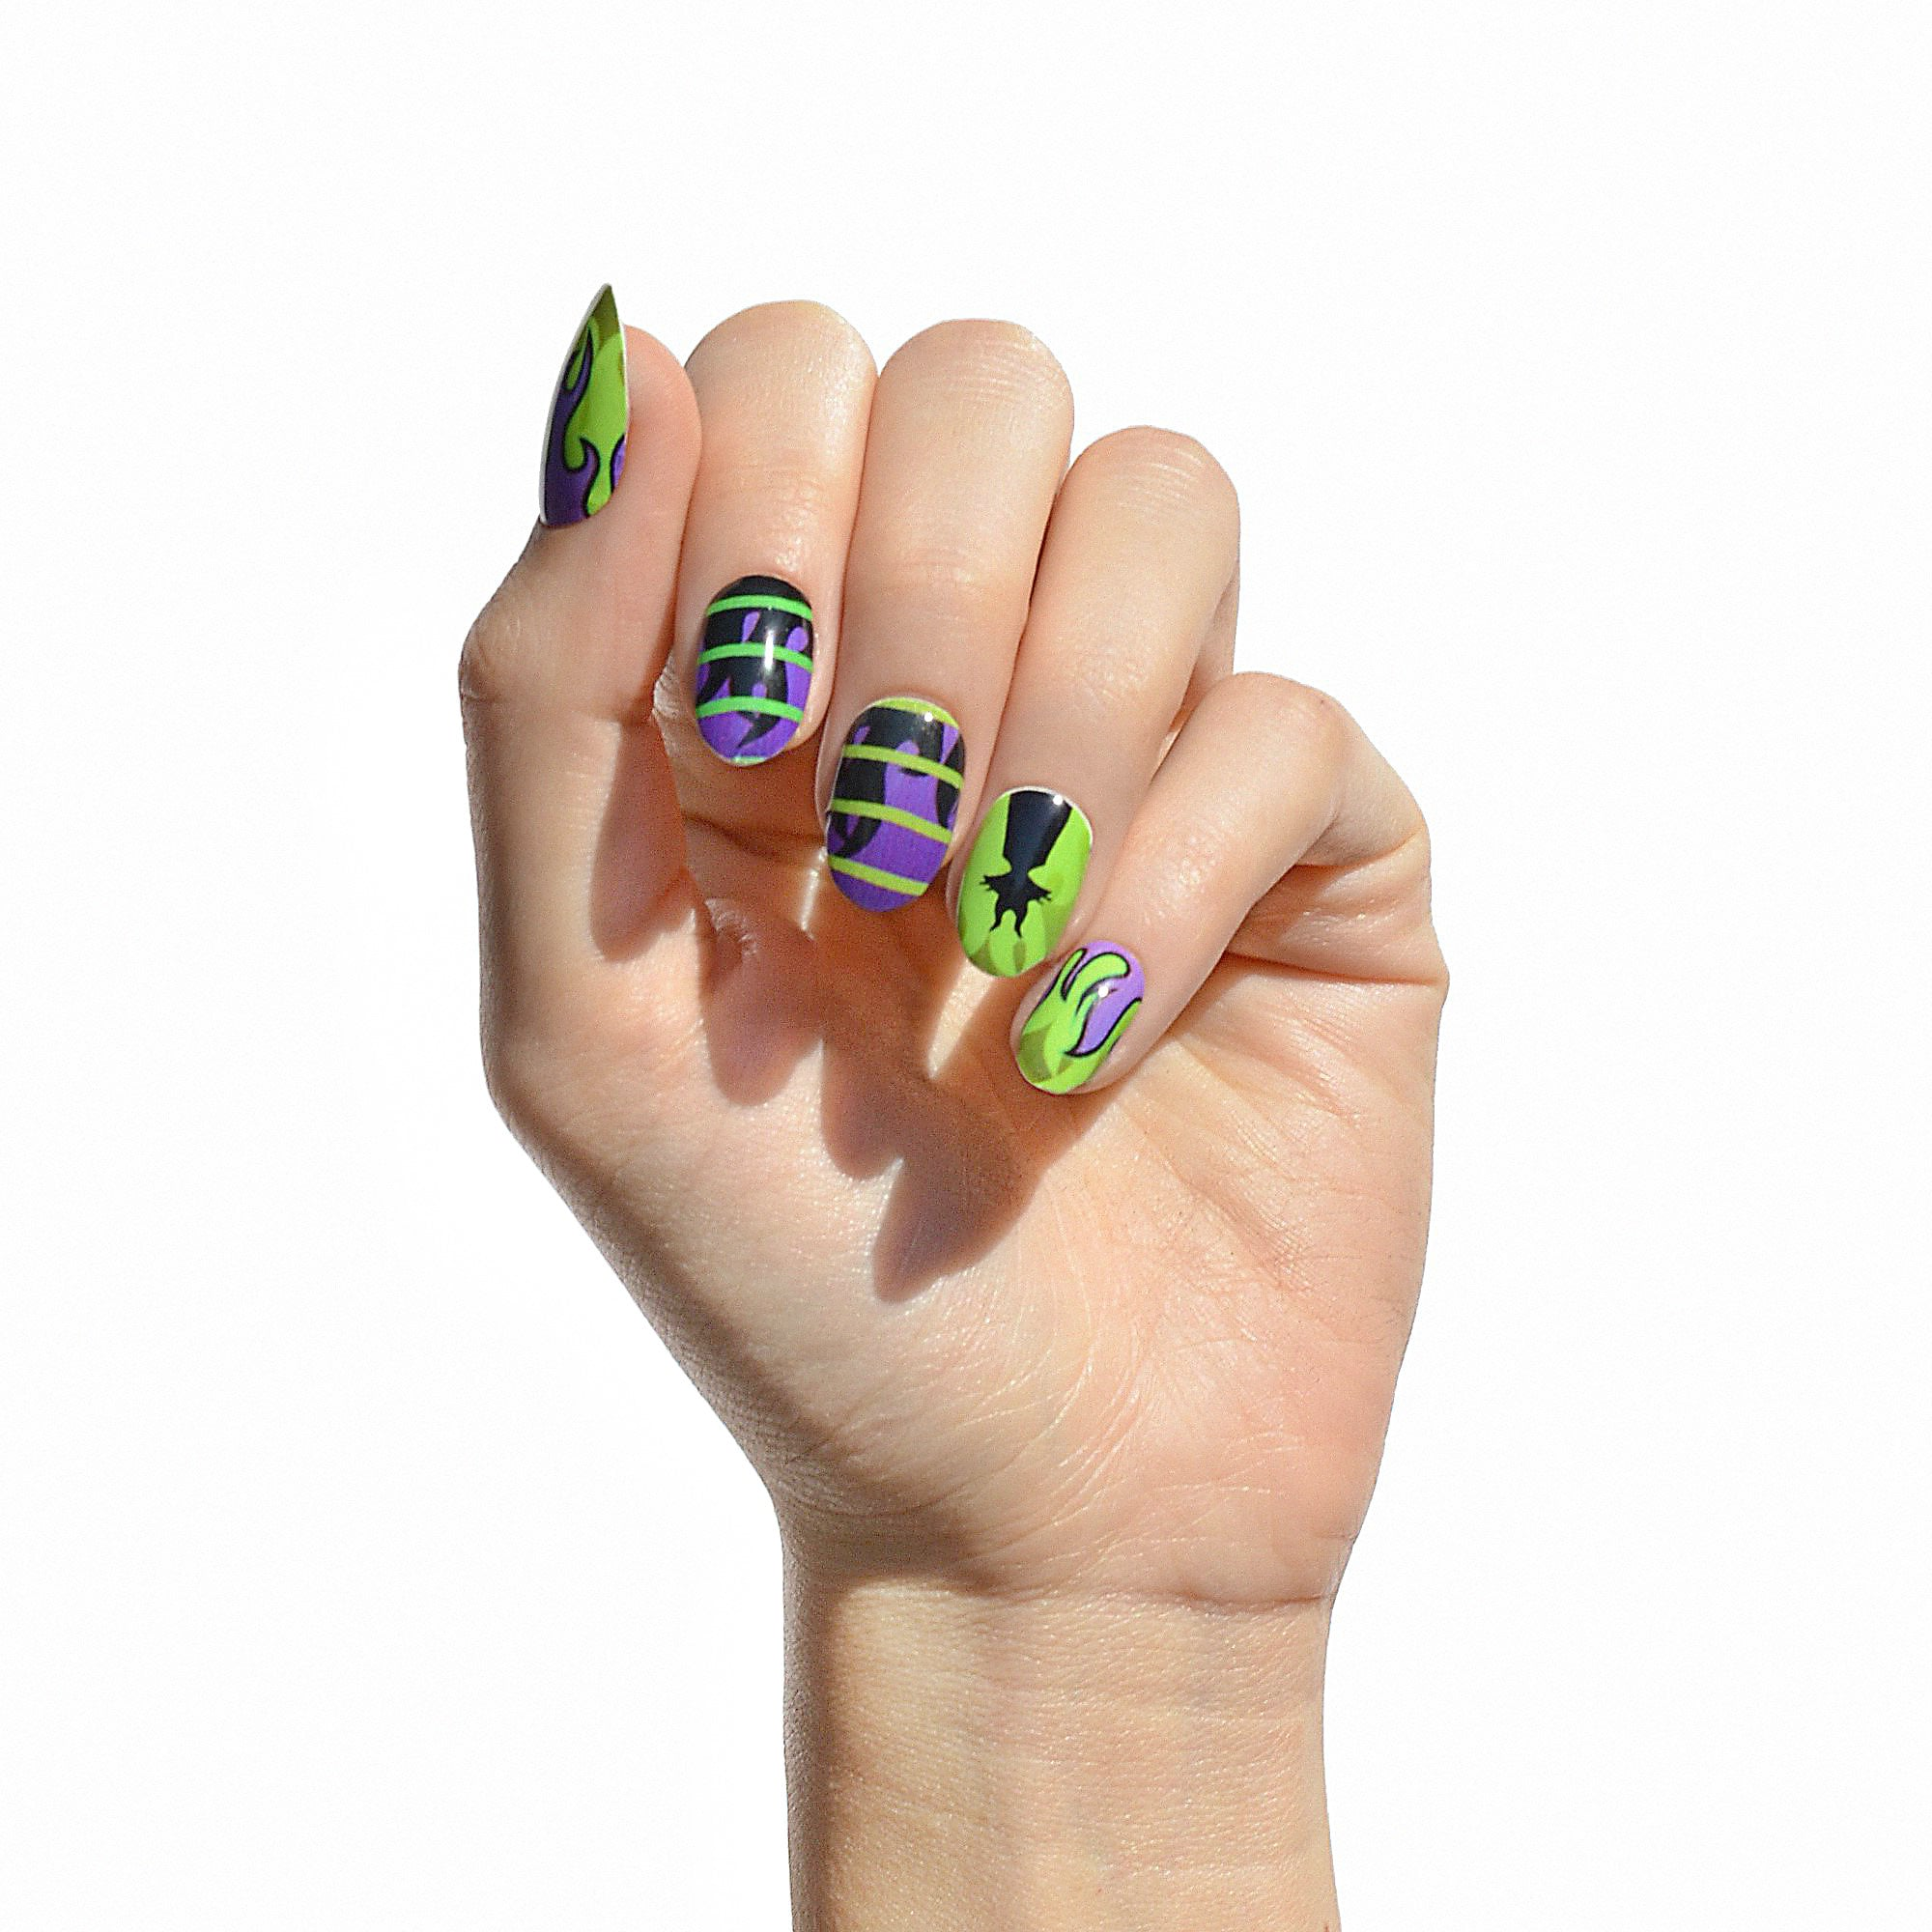 Live In The Shadows Maleficent Nail Wraps You Can Now Rep